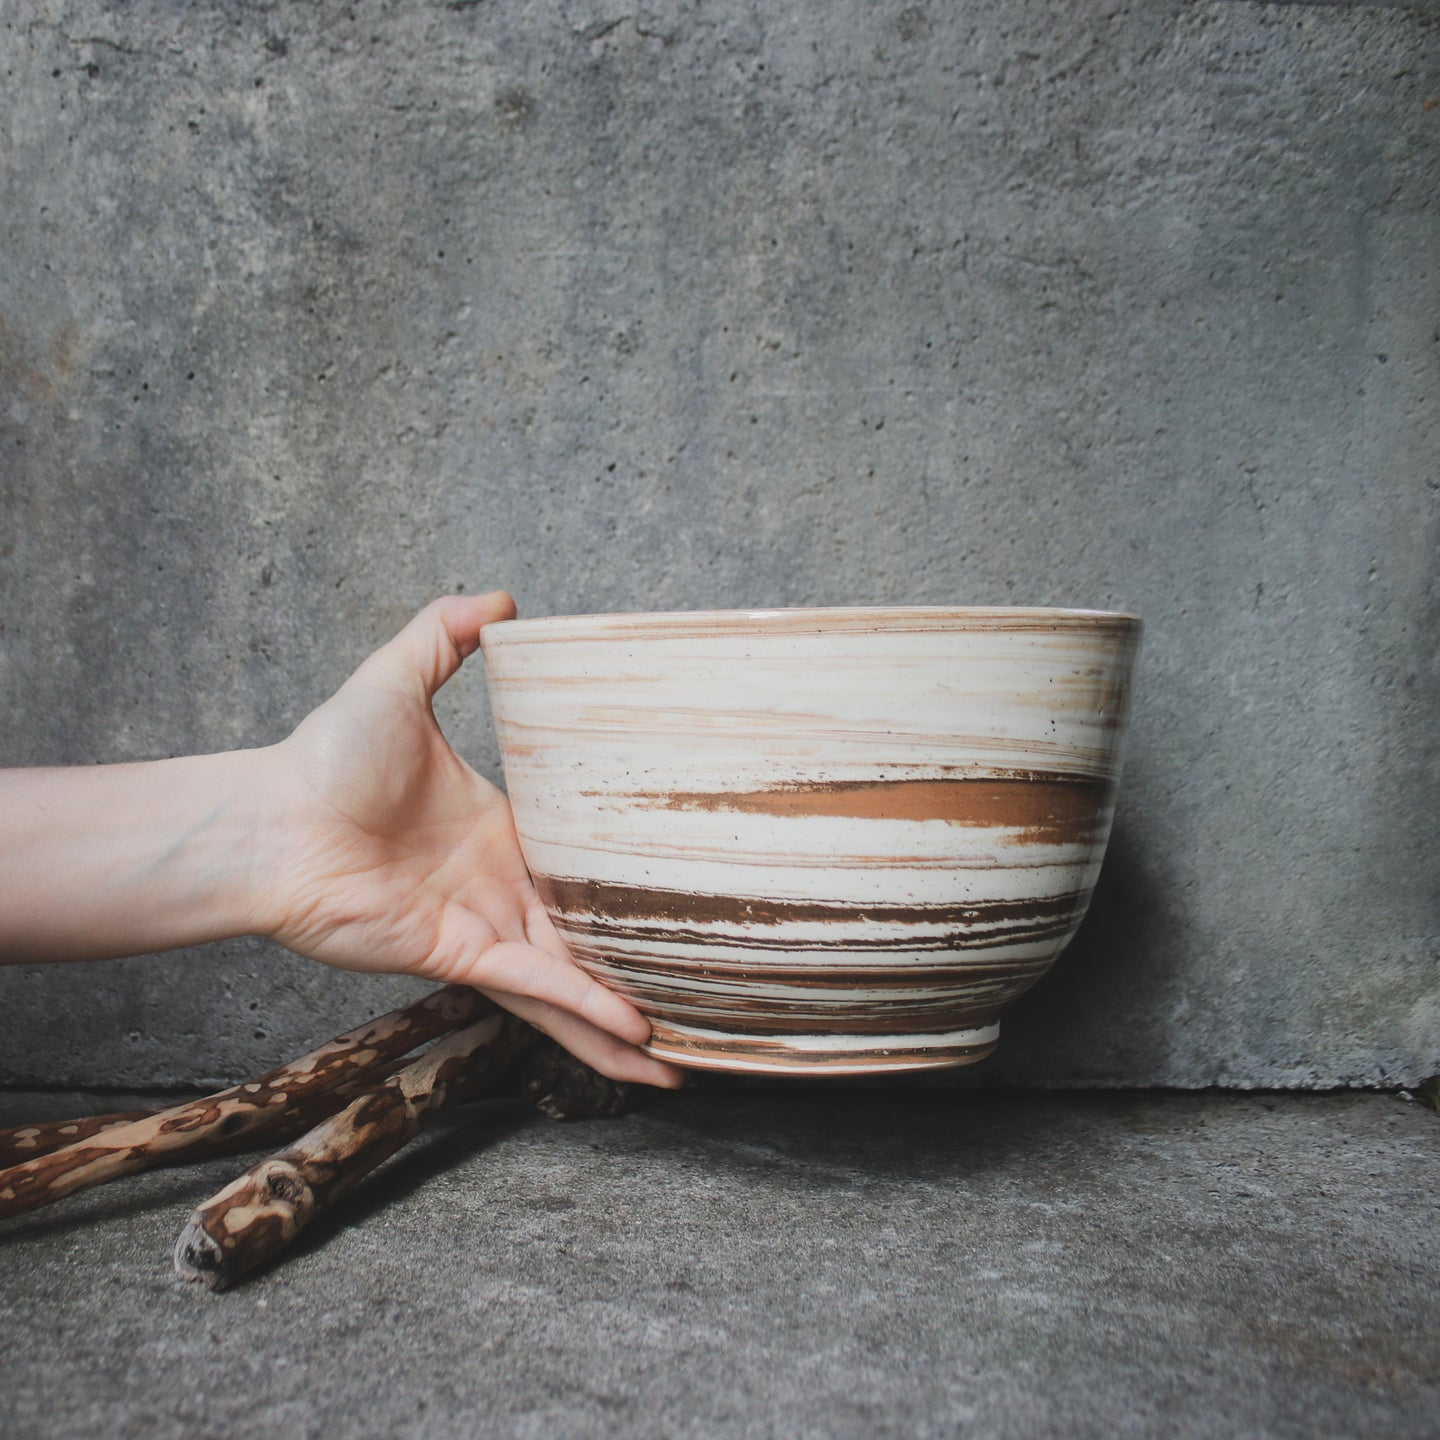 A large handmade ceramic bowl being held up by a single hand against a concrete wall. Made from white, terracotta and brown Australian earthenware clay with a clear glaze.